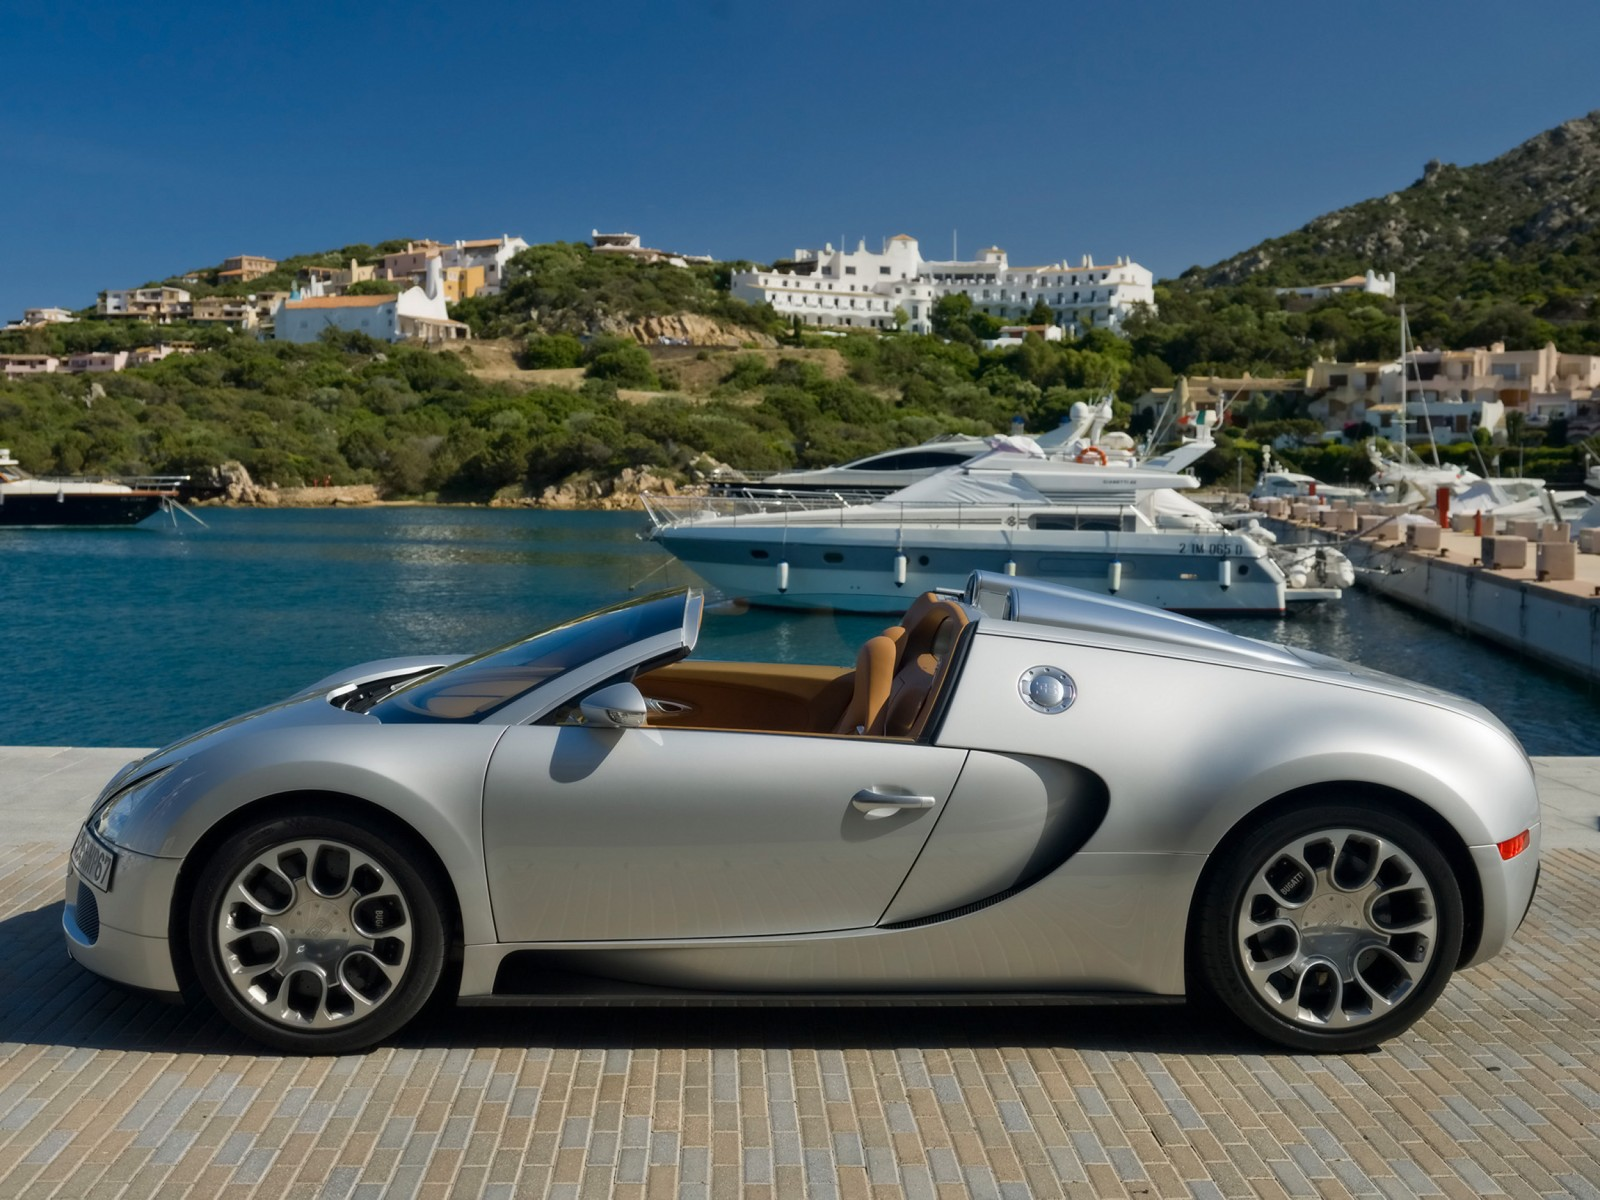 Wallpaper Bugatti Veyron Grand Sport: 2010 BUGATTI VEYRON GRAND SPORT WALLPAPER : Free Car